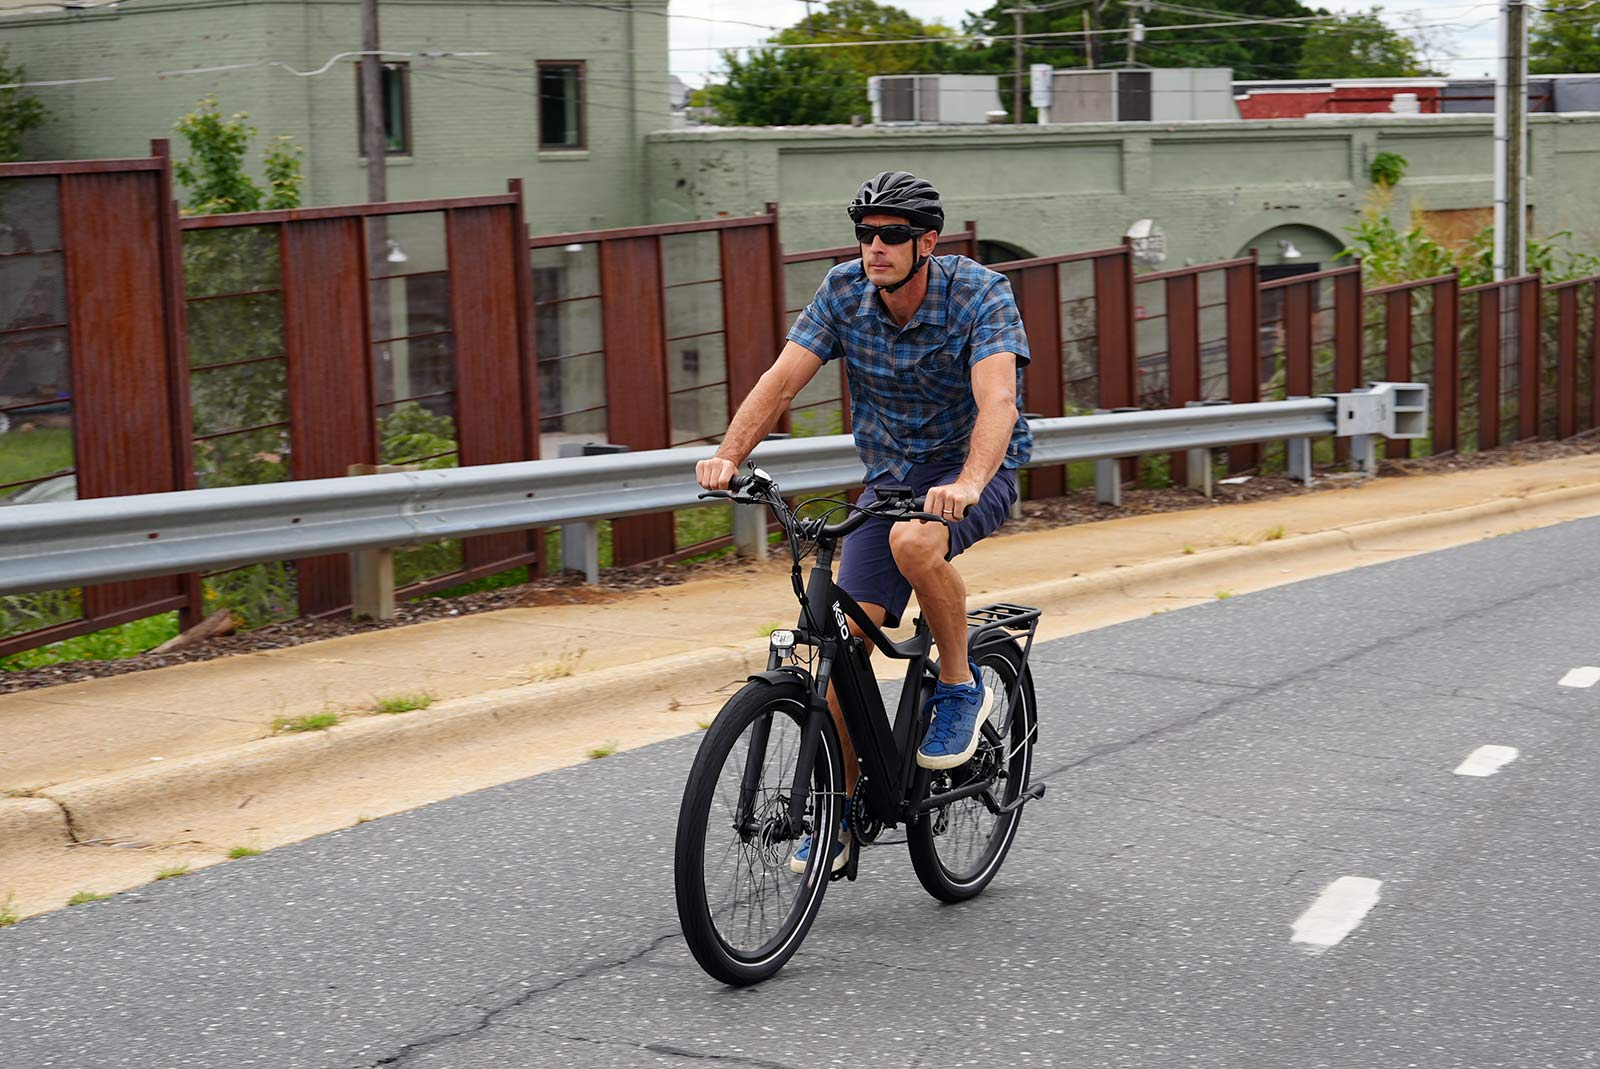 riding up the street for the kbo commuter e-bike review